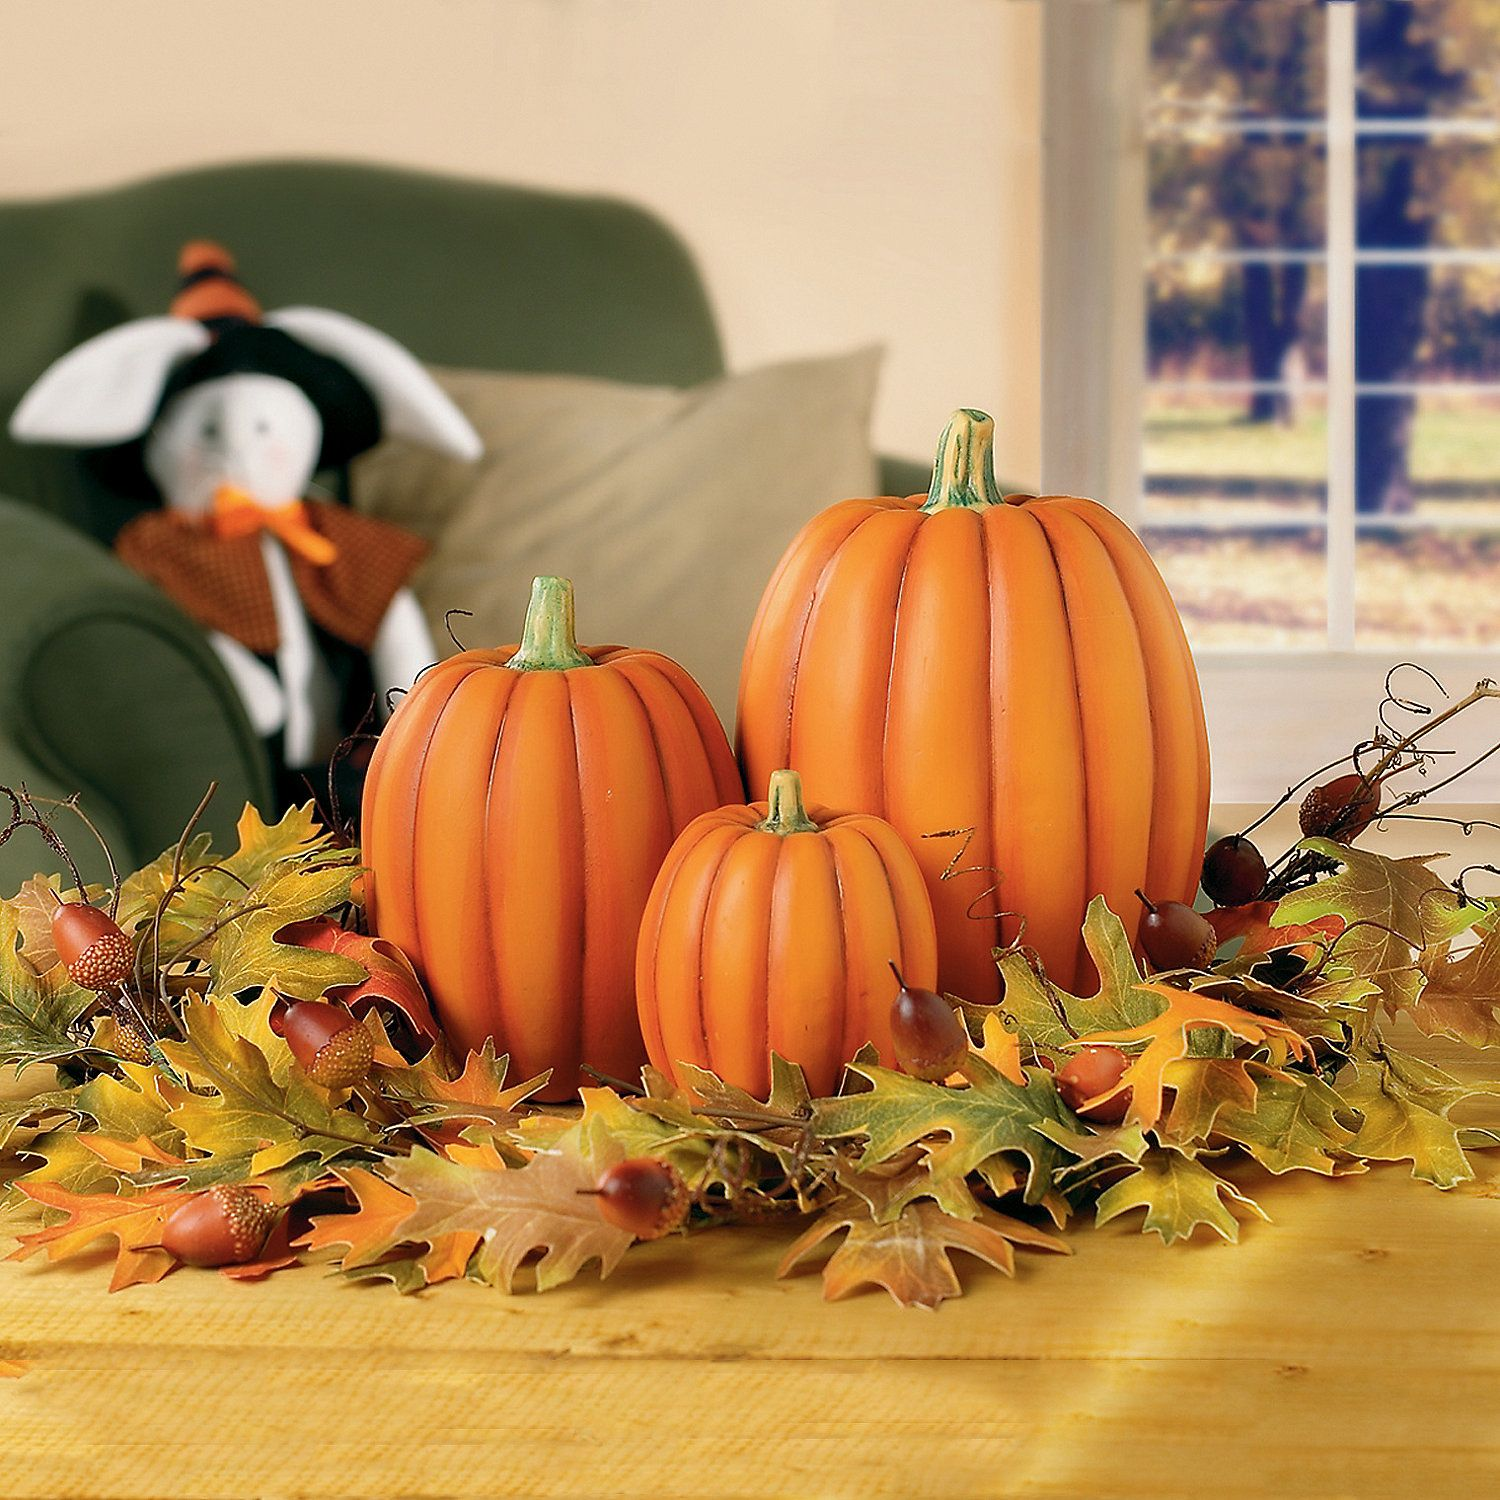 Use these natural-looking ceramic pumpkins as the decorative focal point of  any autumn display or centerpiece.